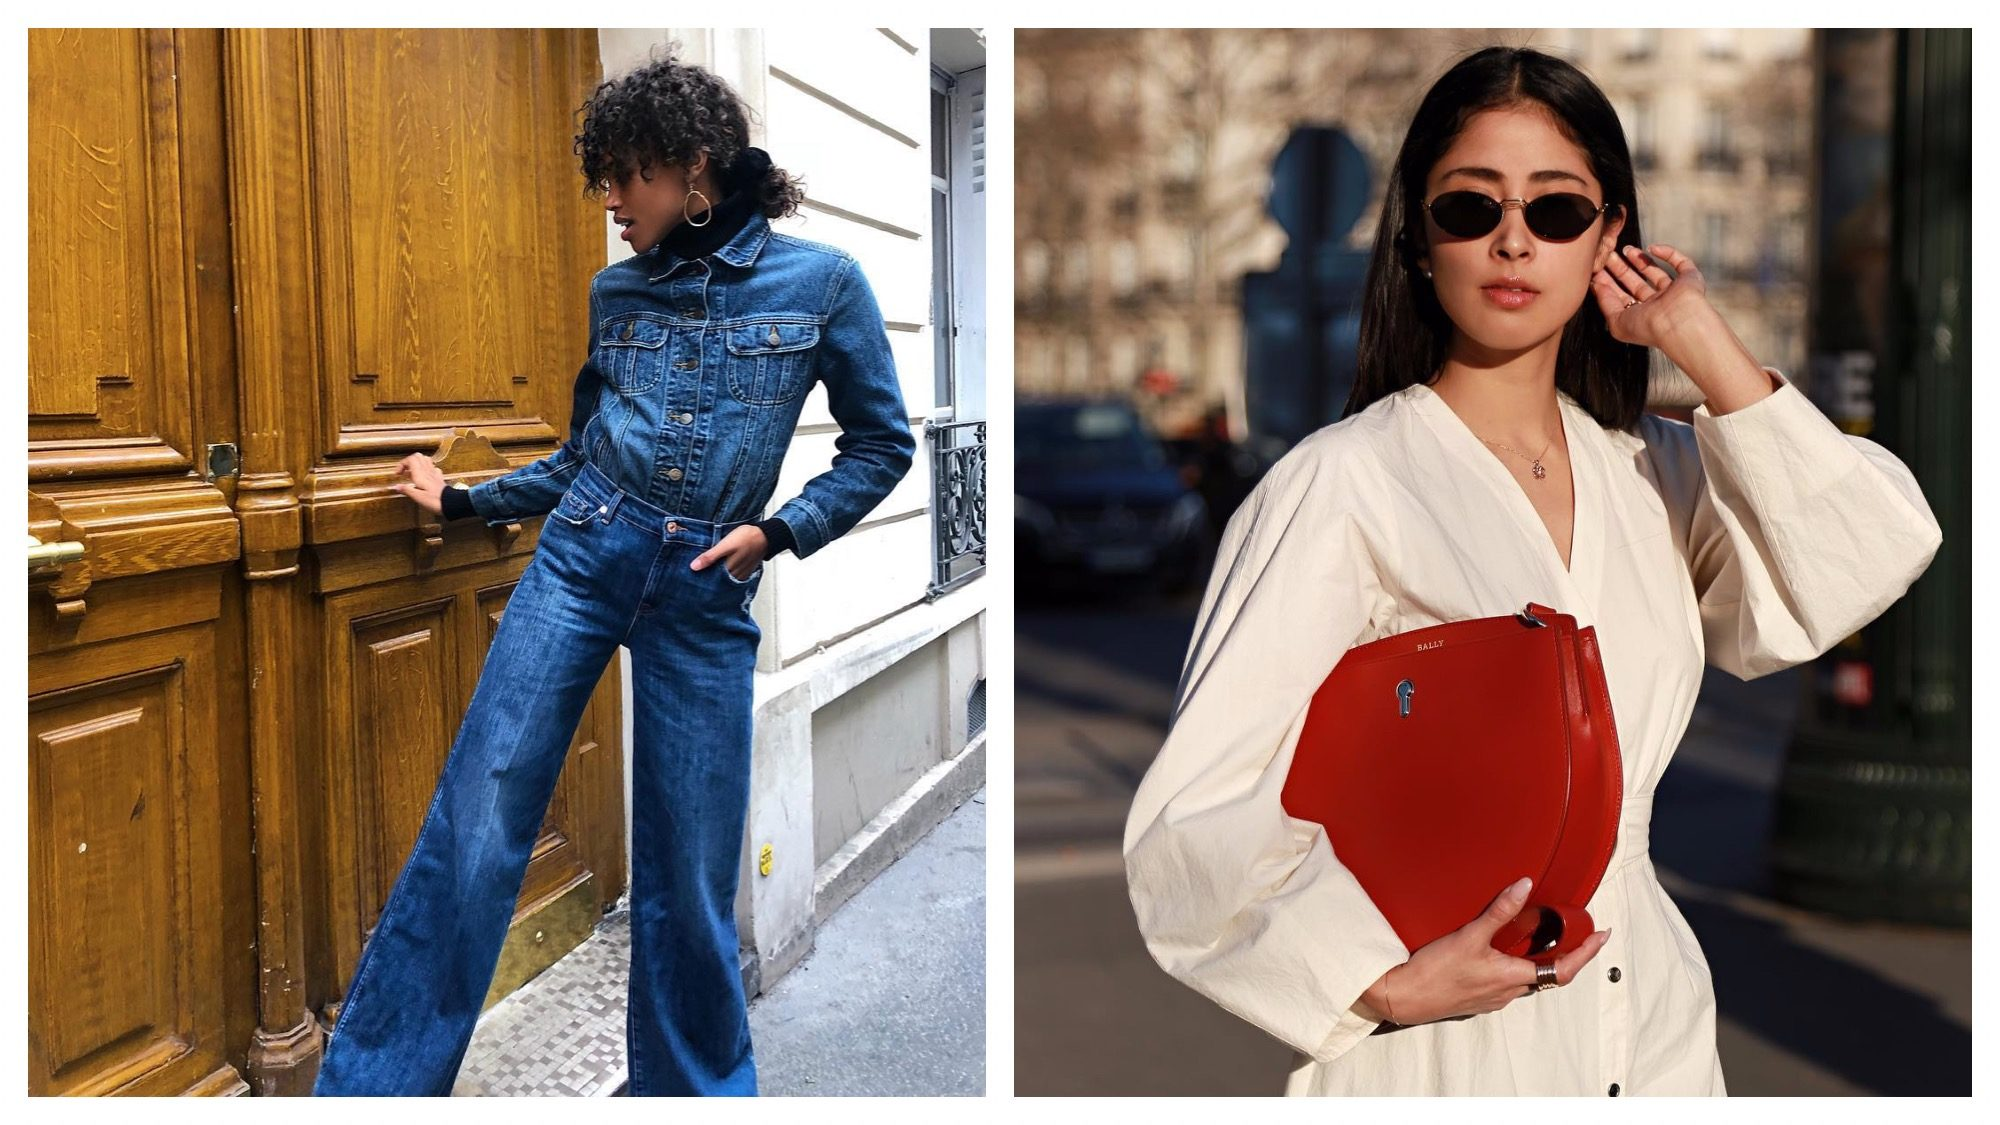 French fashion influencer Hanna Lhoumeau wearing an all denim look in Paris (left). Mexican fashion influencer Denni Elias holding a red leather handbag in Paris (right).